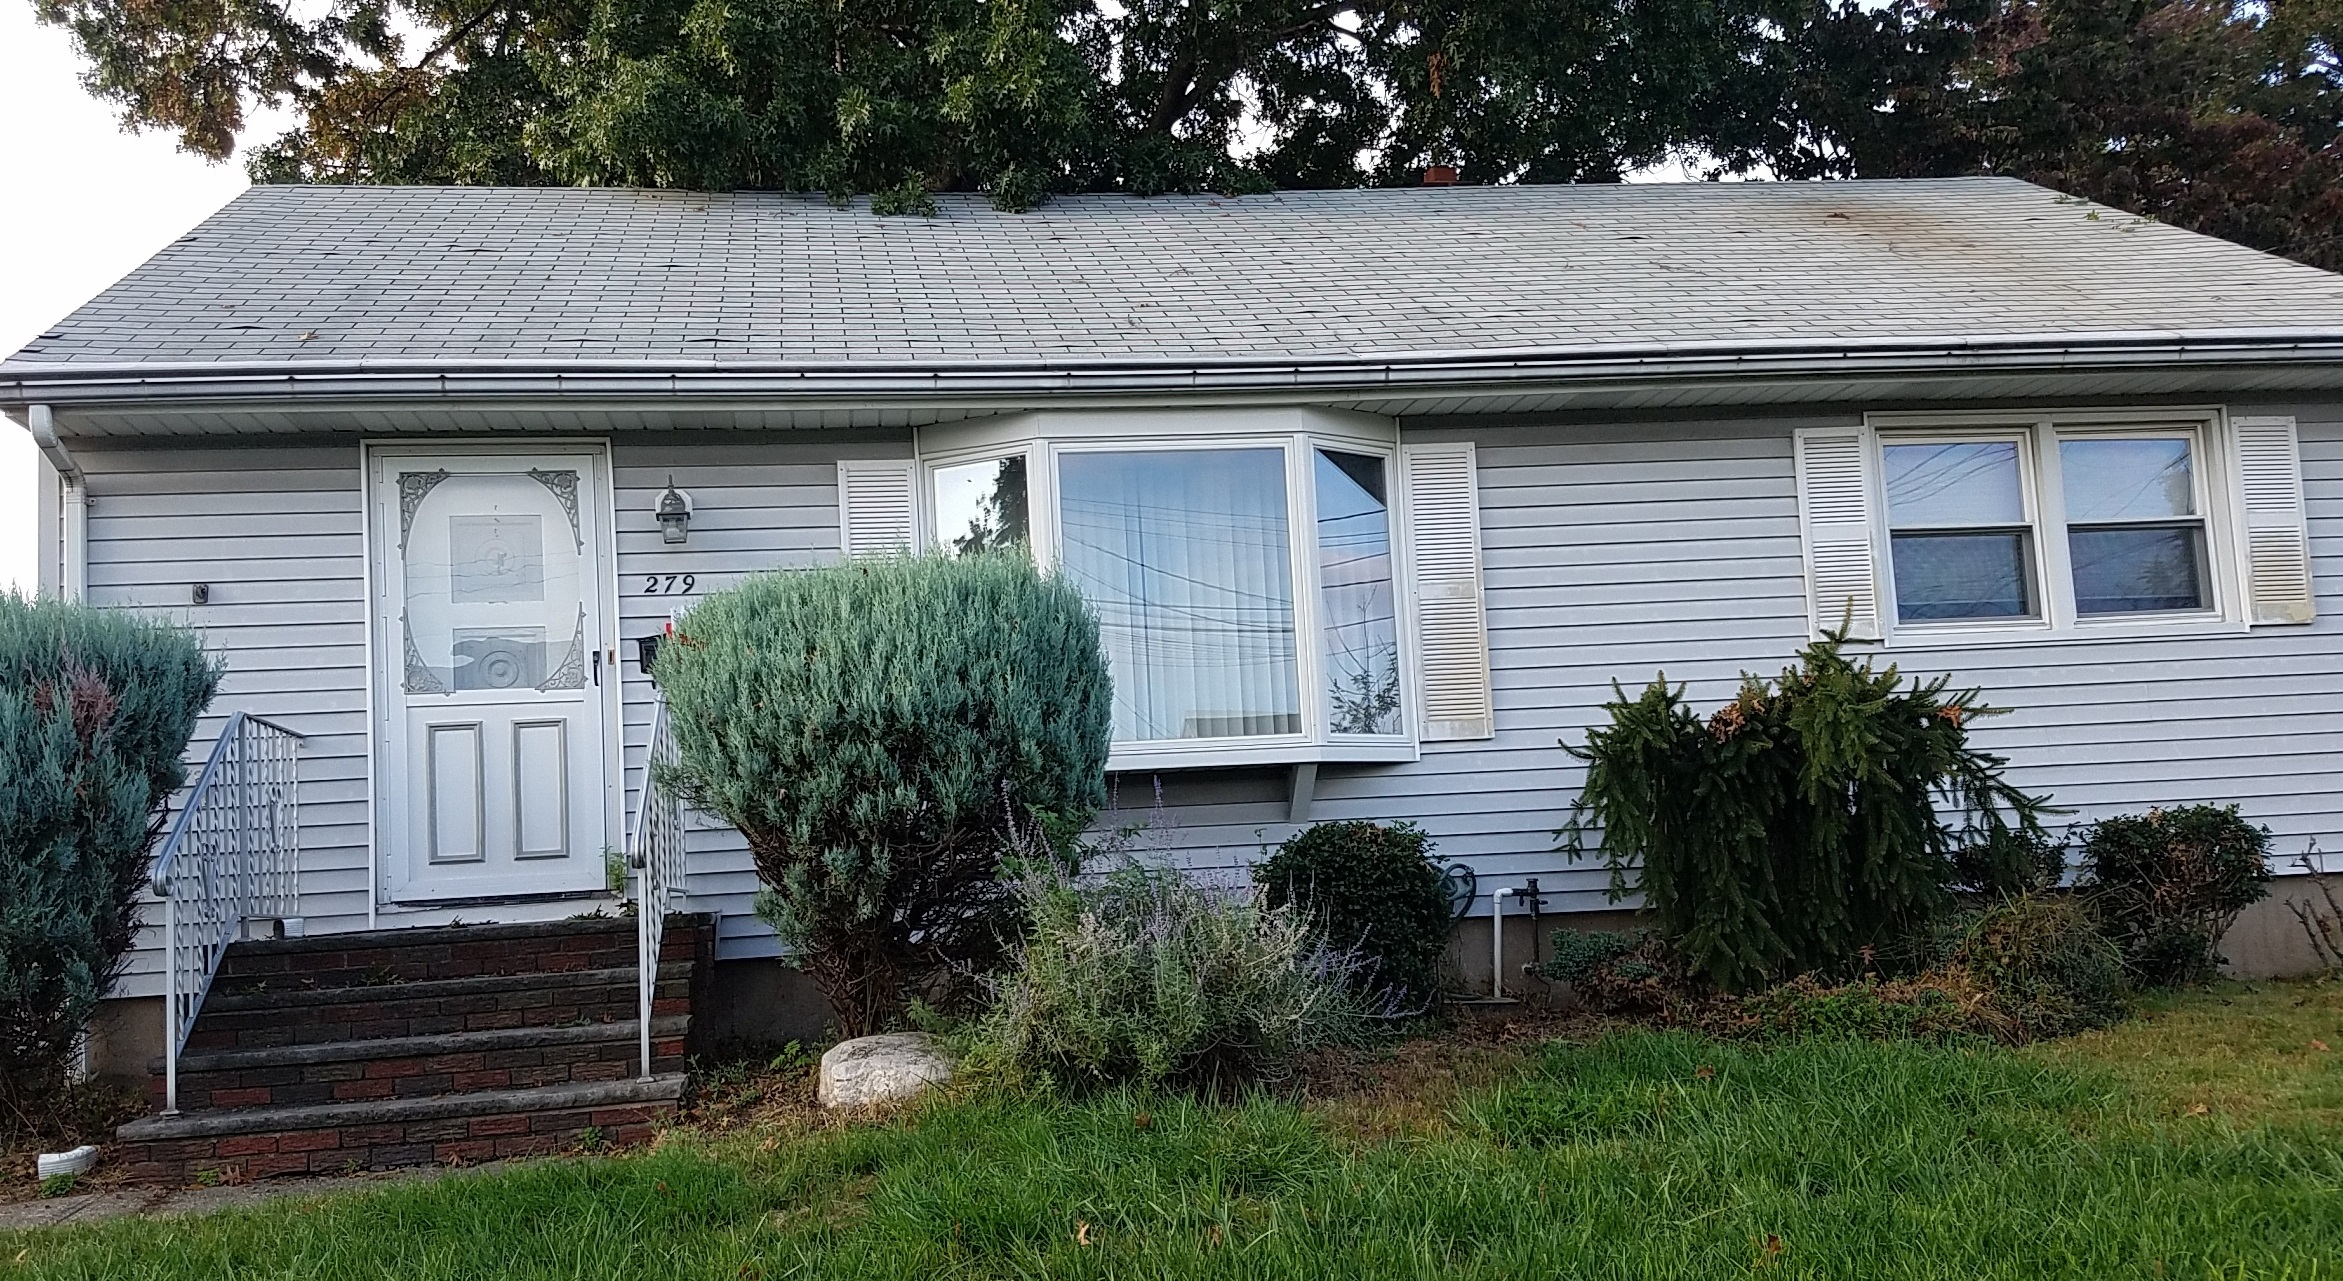 NEW REO (AUCTION) – 279 John Ochs Dr. Saddle Brook, NJ 07663 $314,000